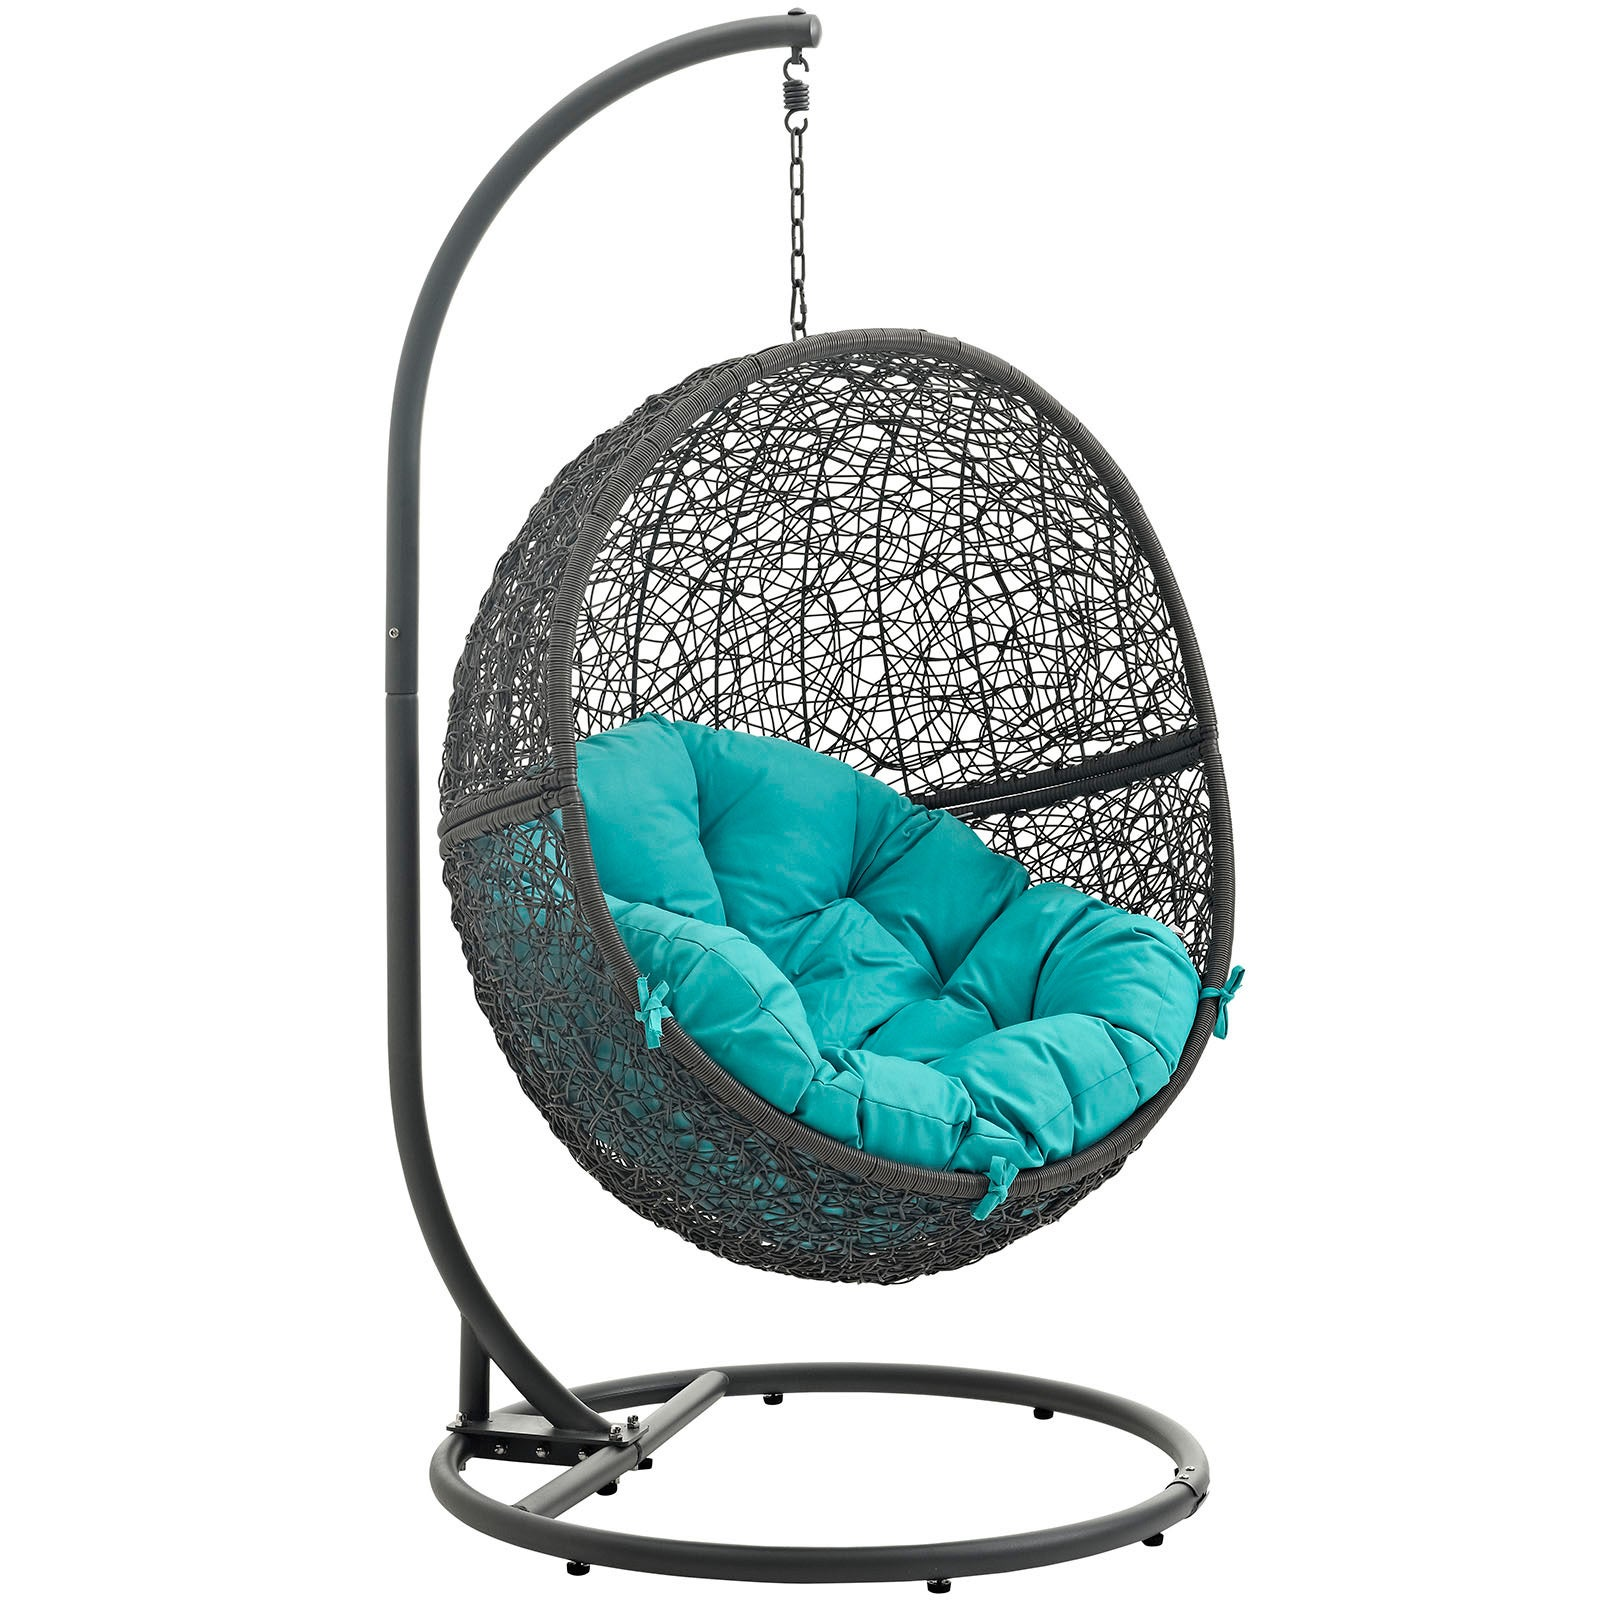 Cloak Outdoor Patio Swing Chair Free Shipping Today 20603802